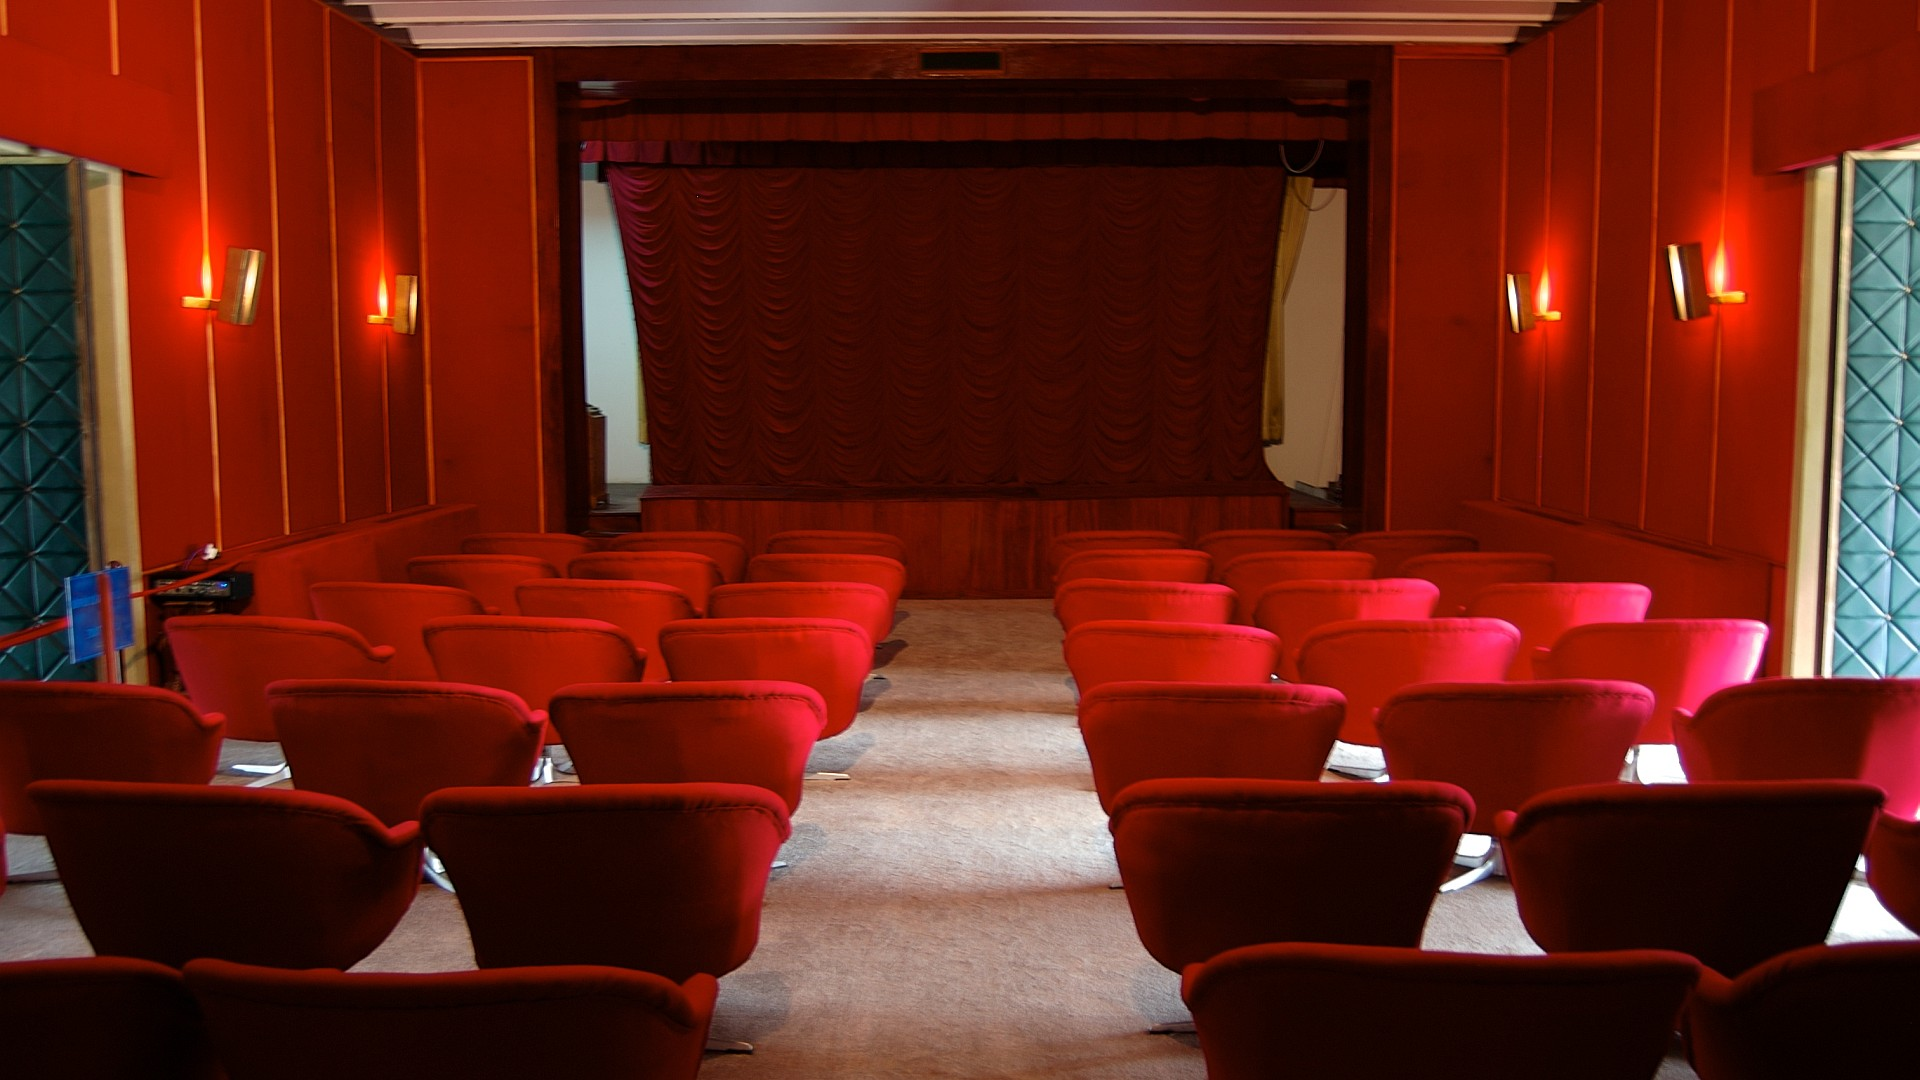 Movie theater wallpaper wallpapersafari - Home theater wallpaper ...